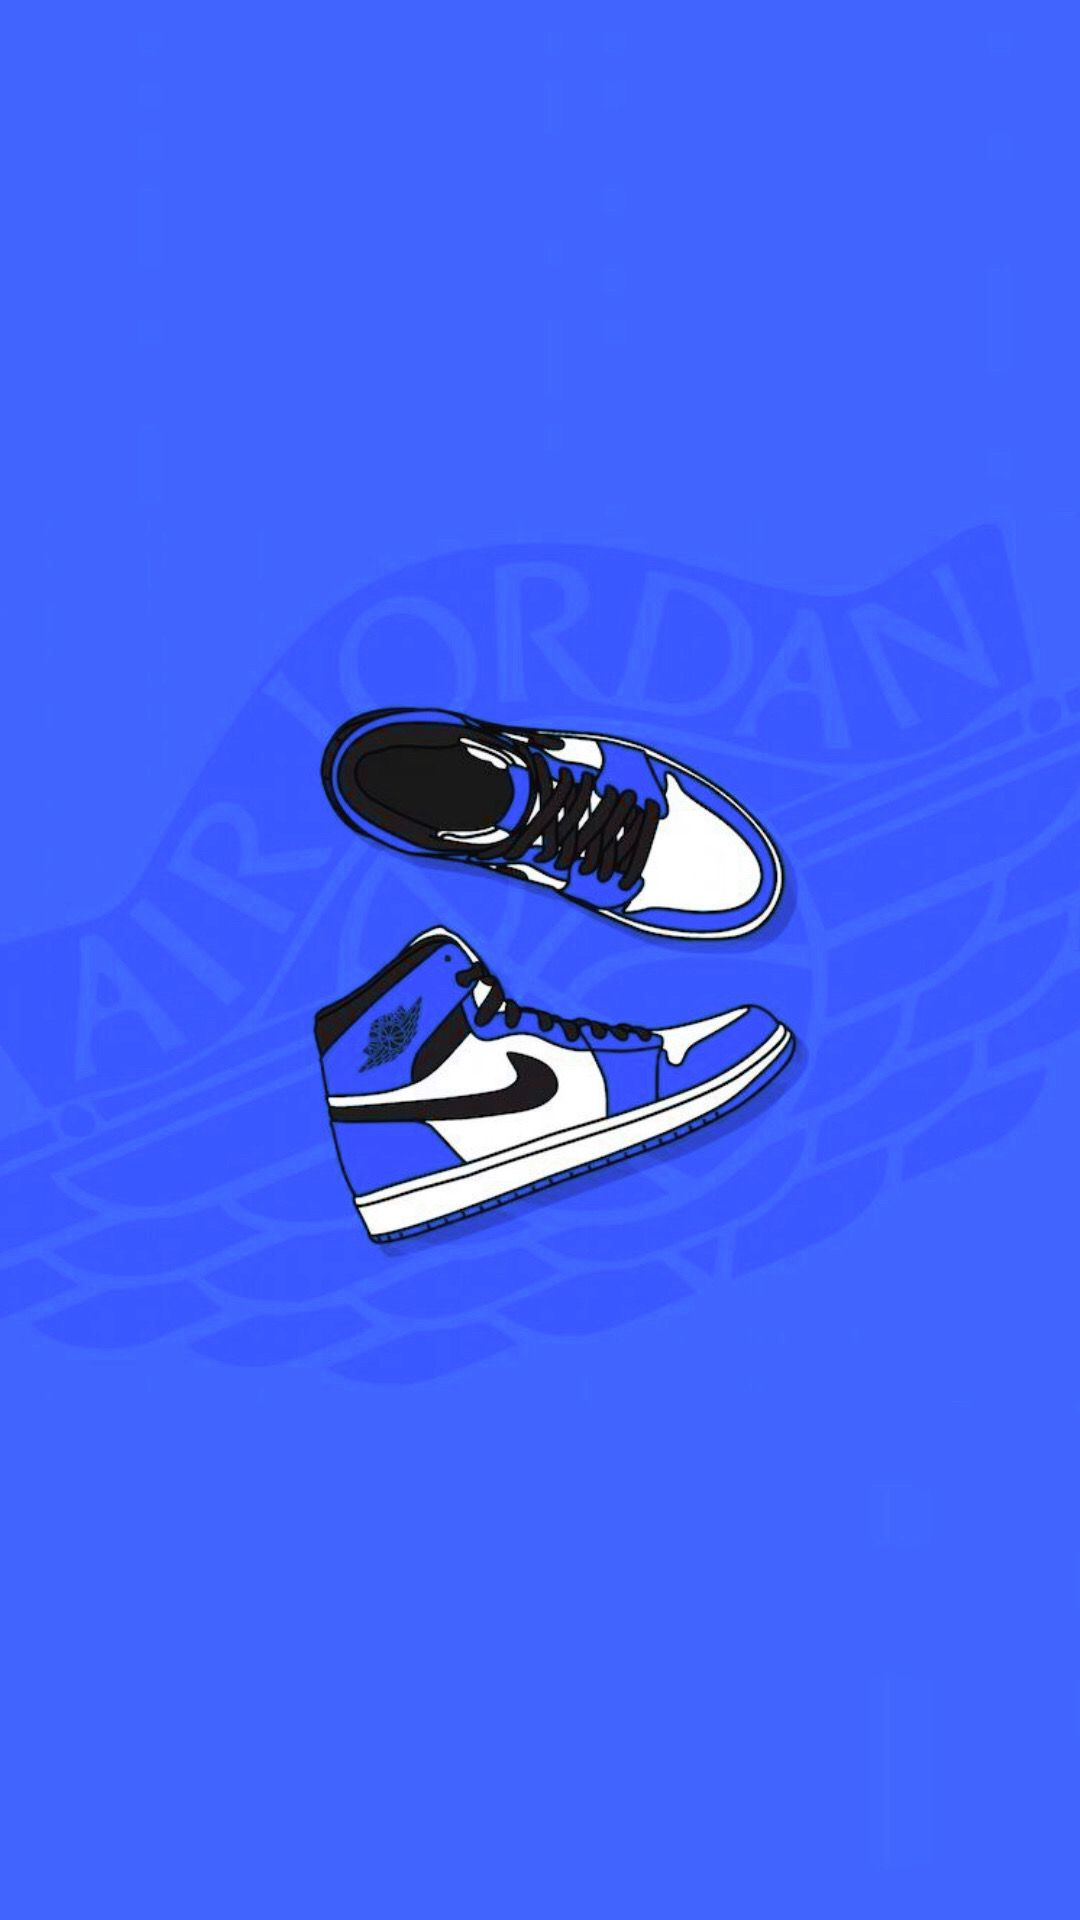 Pin By Alex On Shoe Wallpapers Sneakers Wallpaper Jordan Shoes Wallpaper Shoes Wallpaper